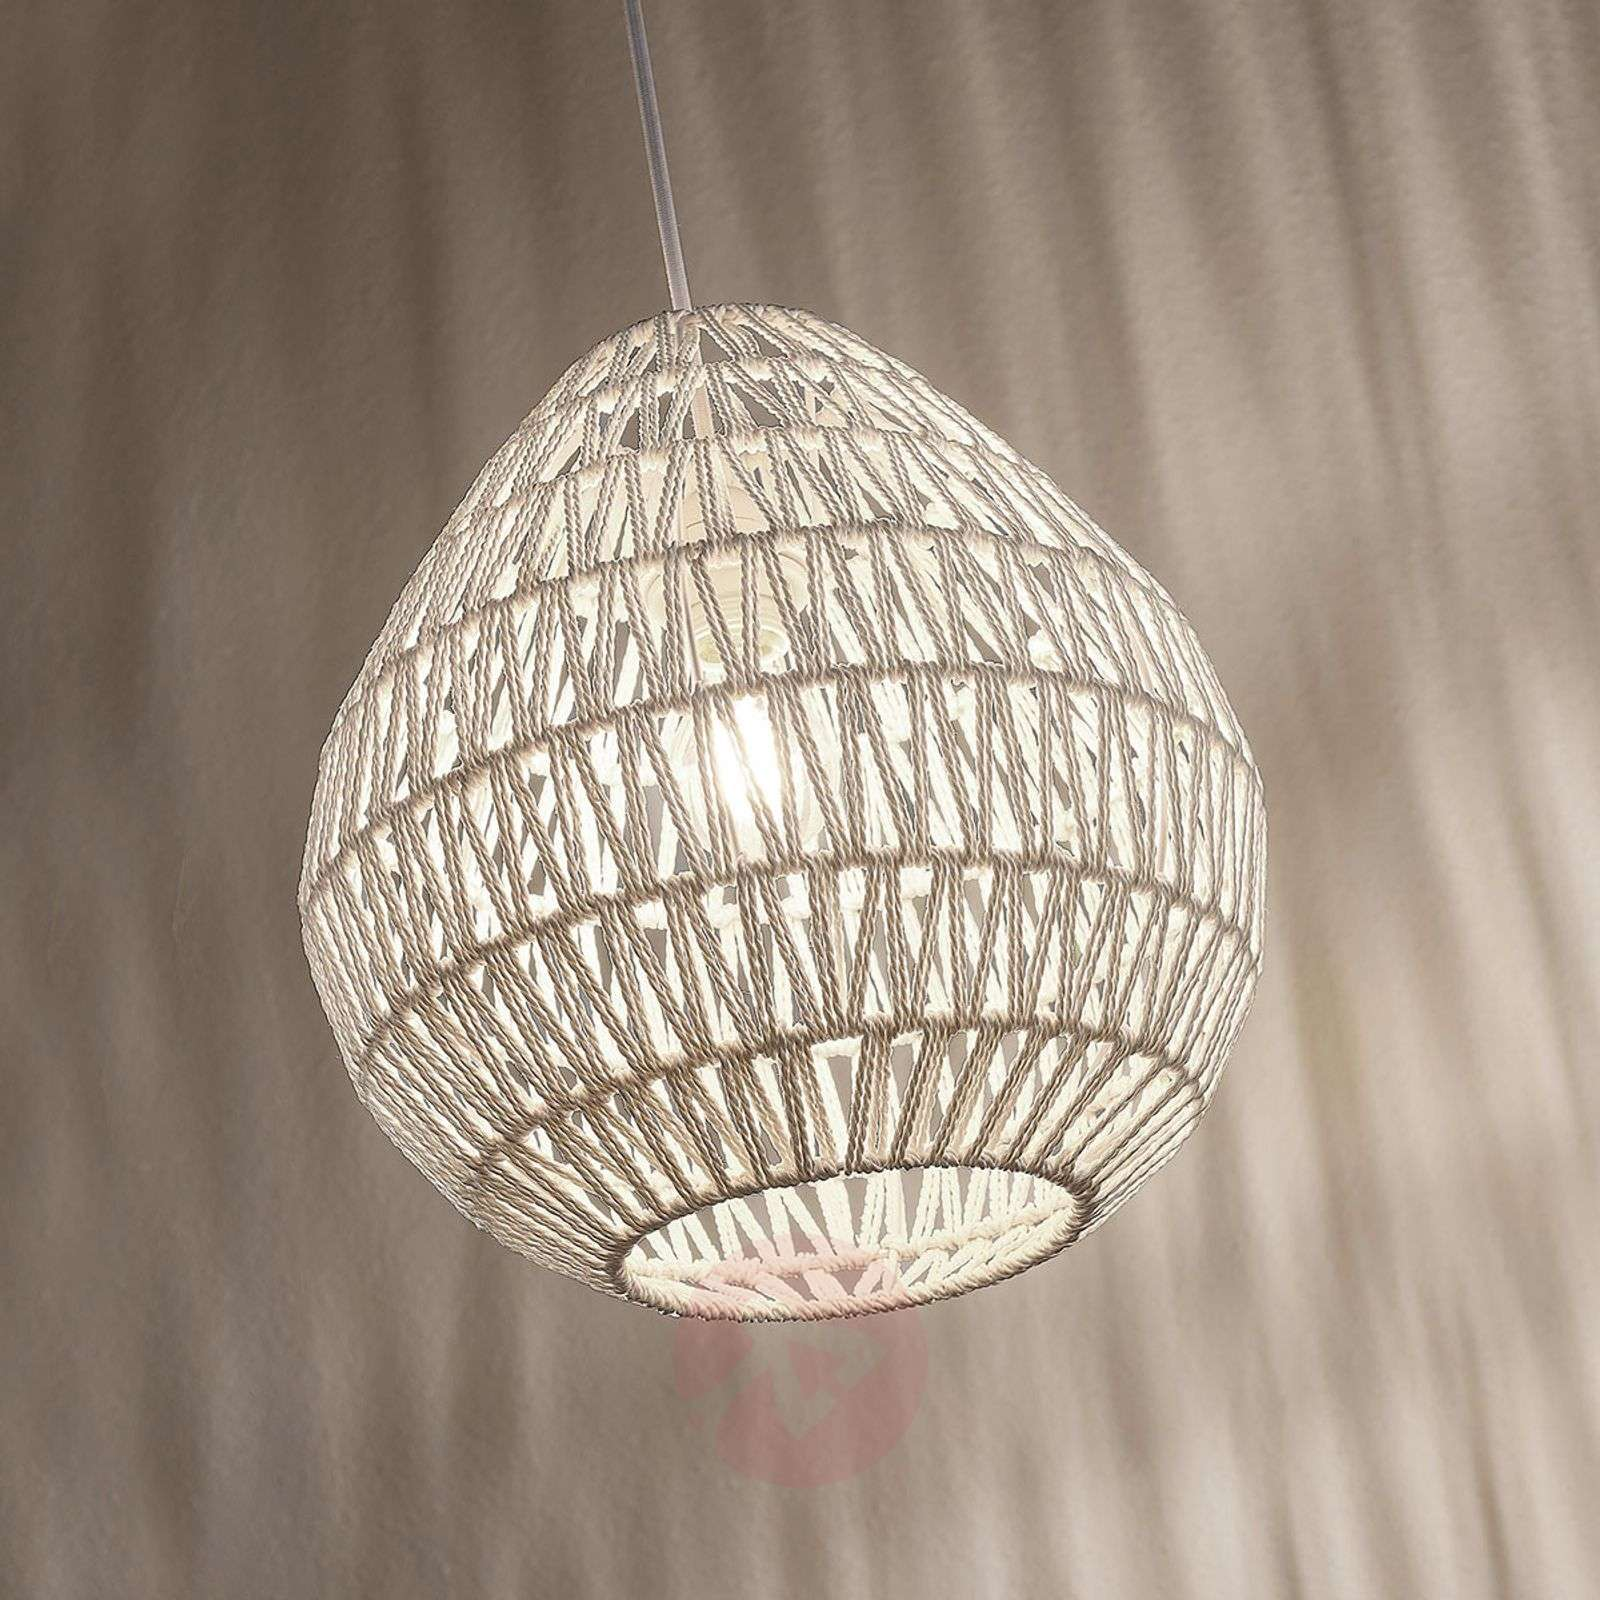 Pendant light Danya made of white woven paper 33cm-9624289-02